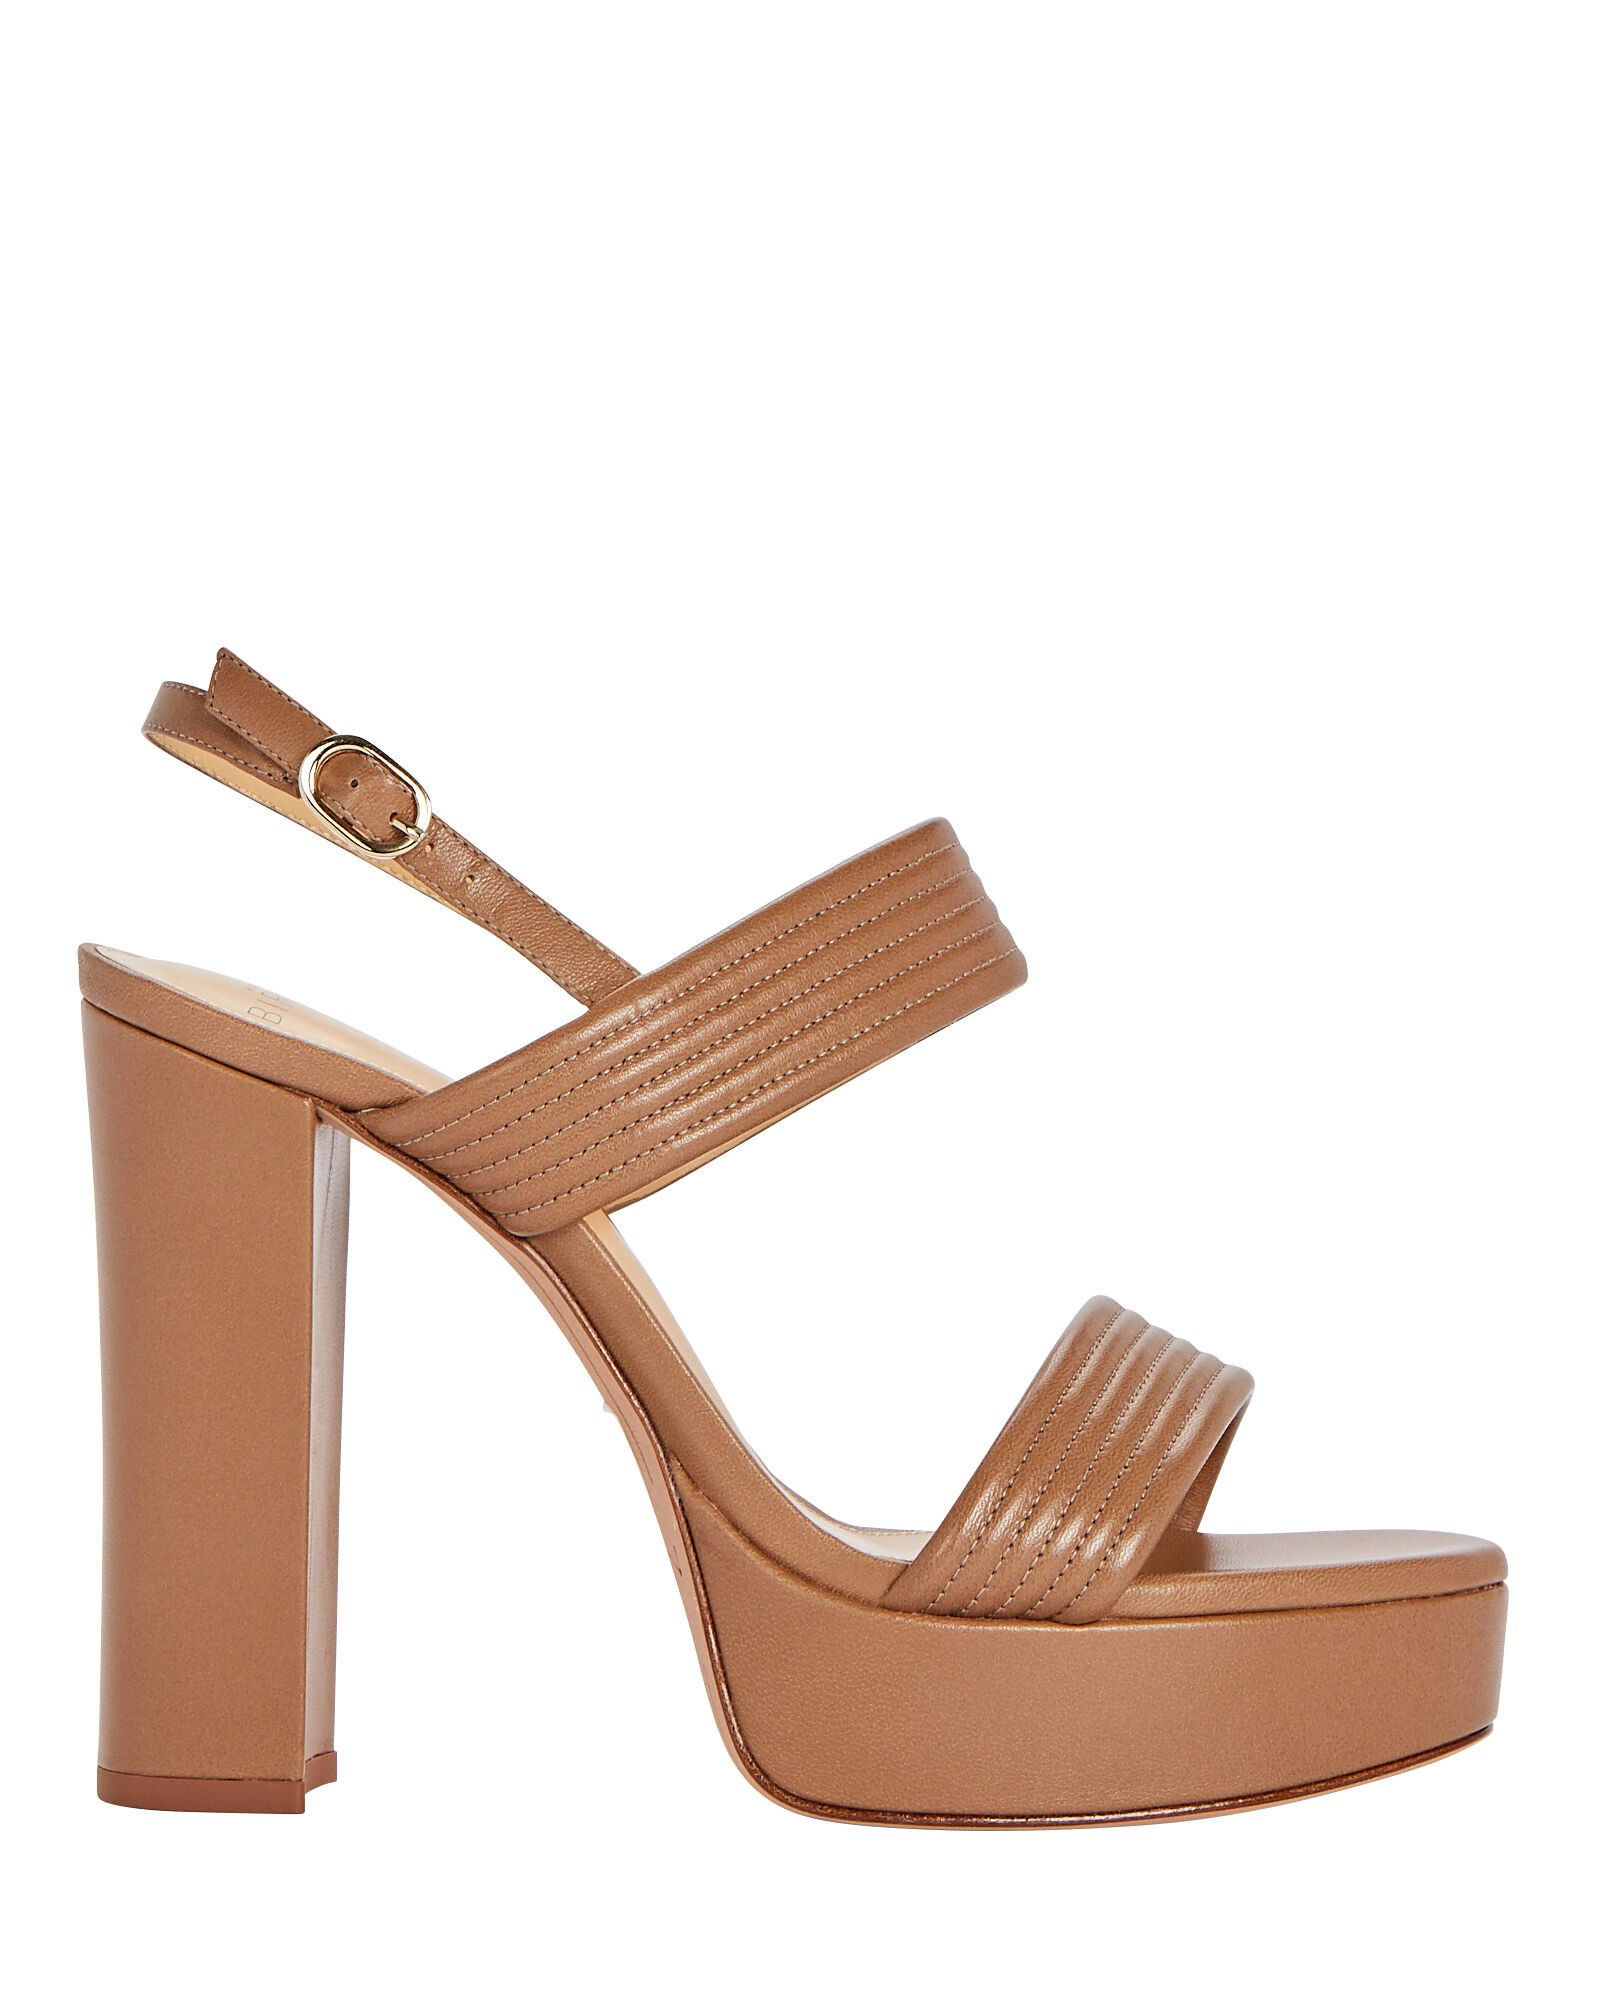 Veronica 120 Plateau Sandals, BEIGE, hi-res